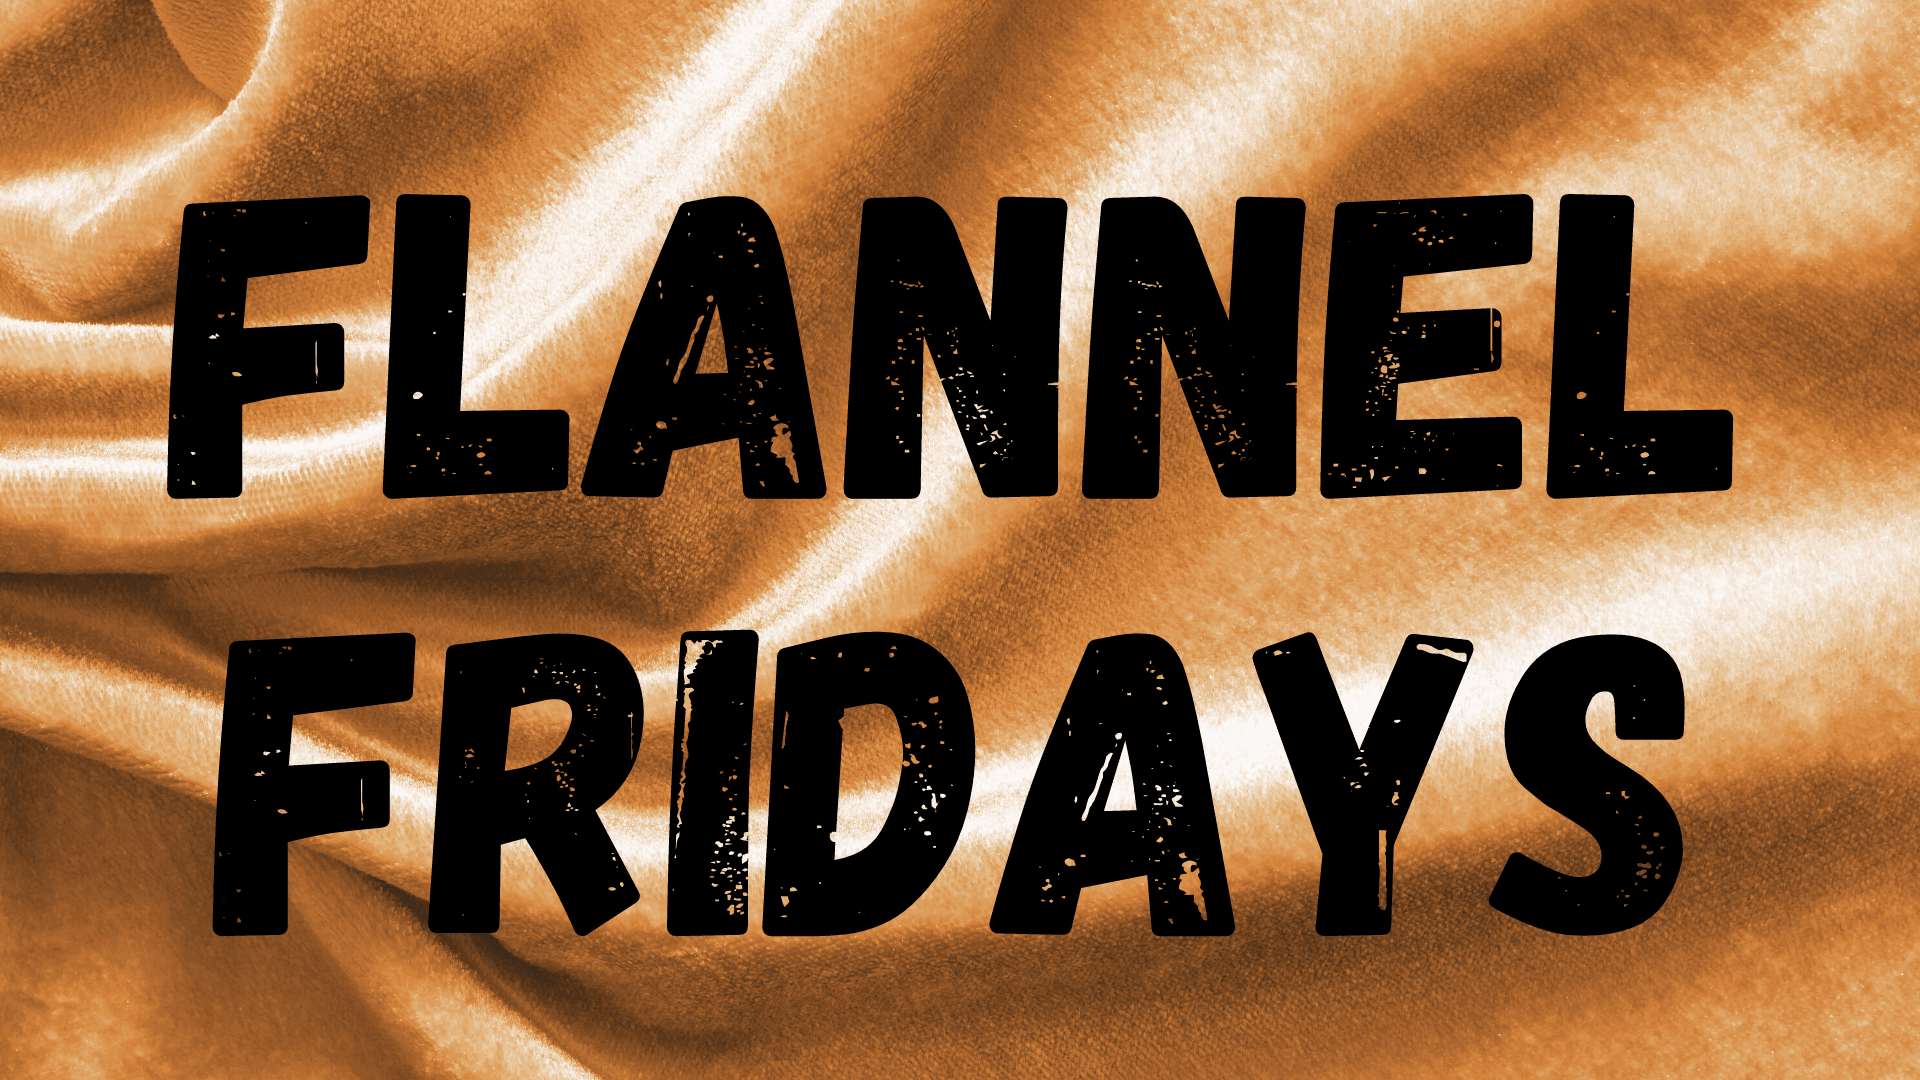 Flannel fridays Opens in new window